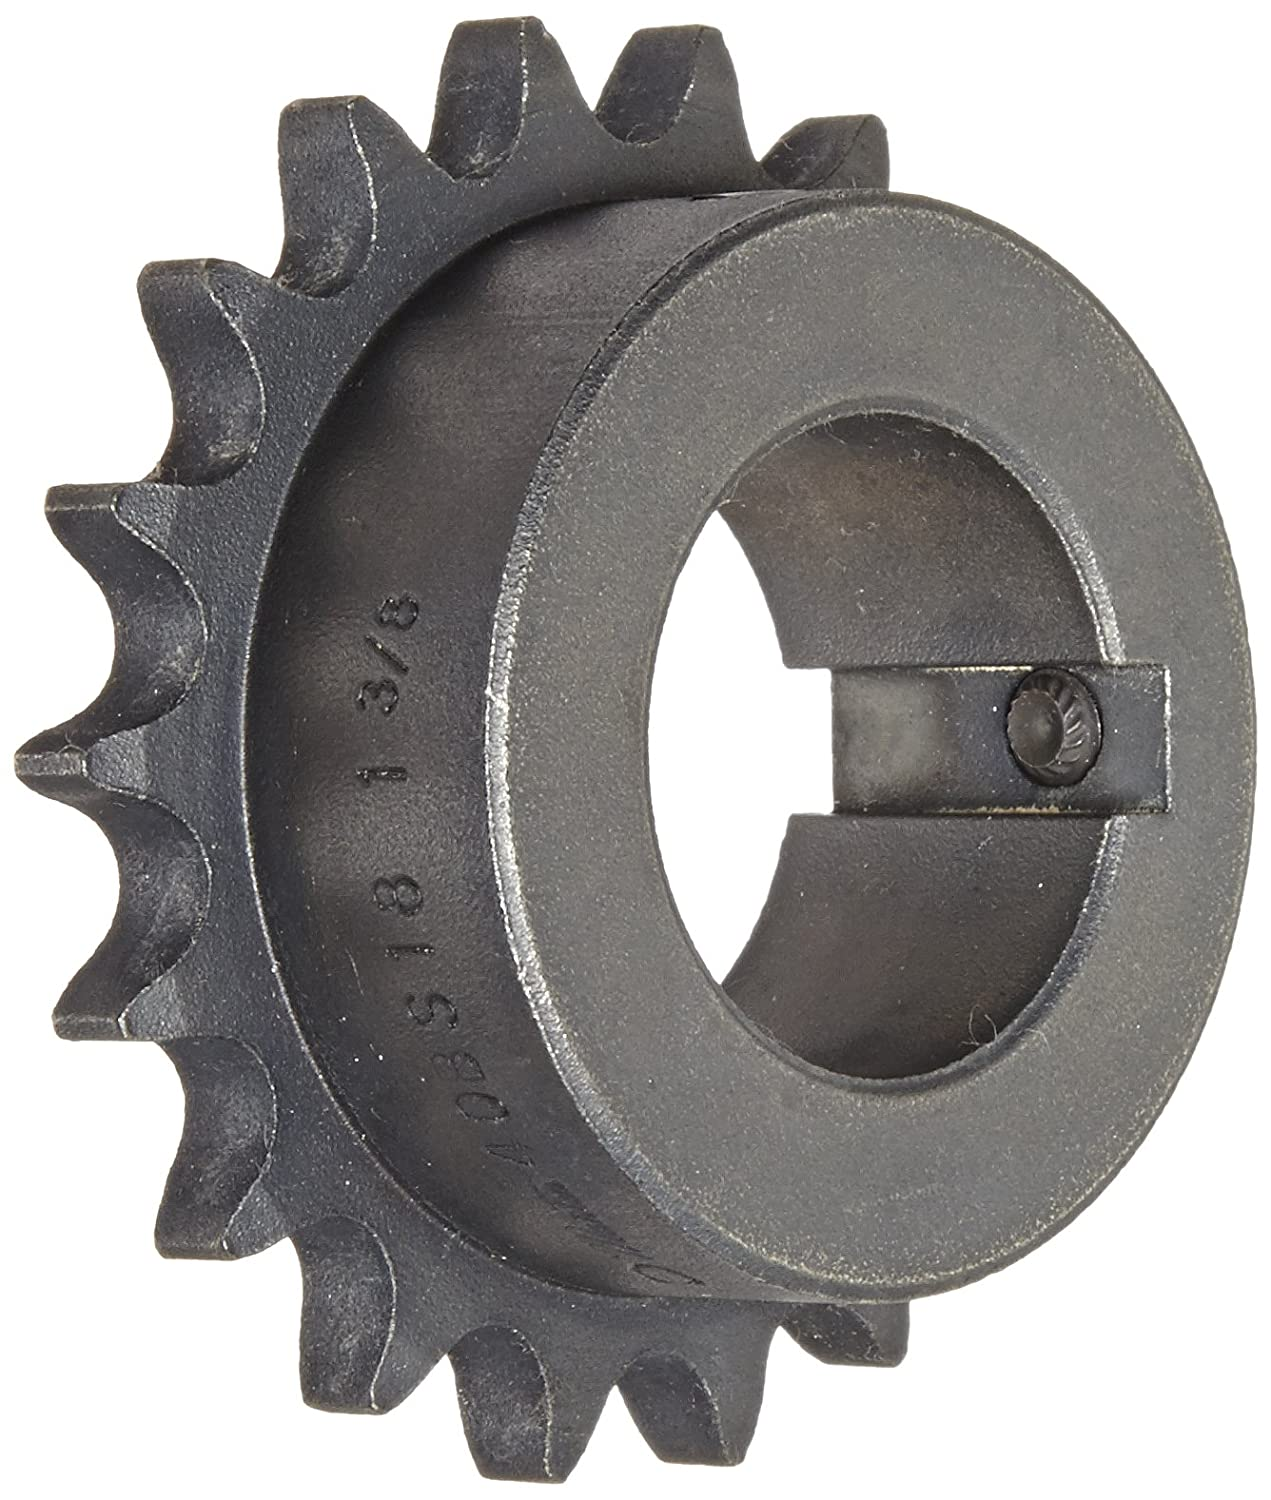 Martin Roller Chain Sprocket, Bored-to-Size, Type B Hub, Single Strand, 40 Chain Size, 0.5